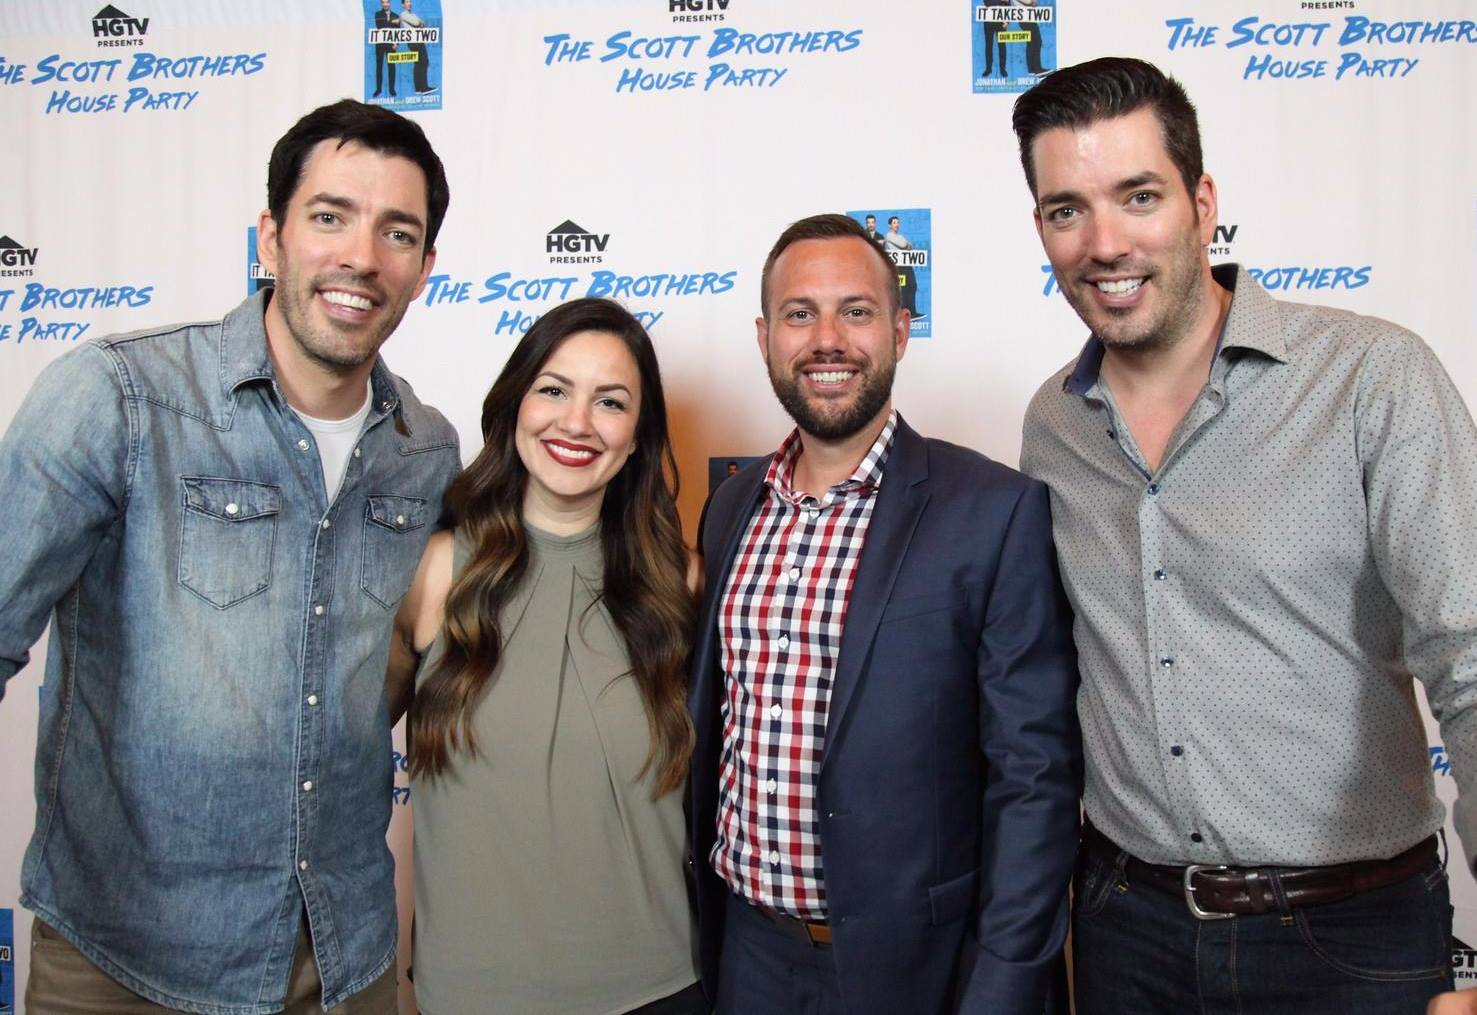 Three men and one woman smiling in front of HGTV The Scott Brothers House Party logo